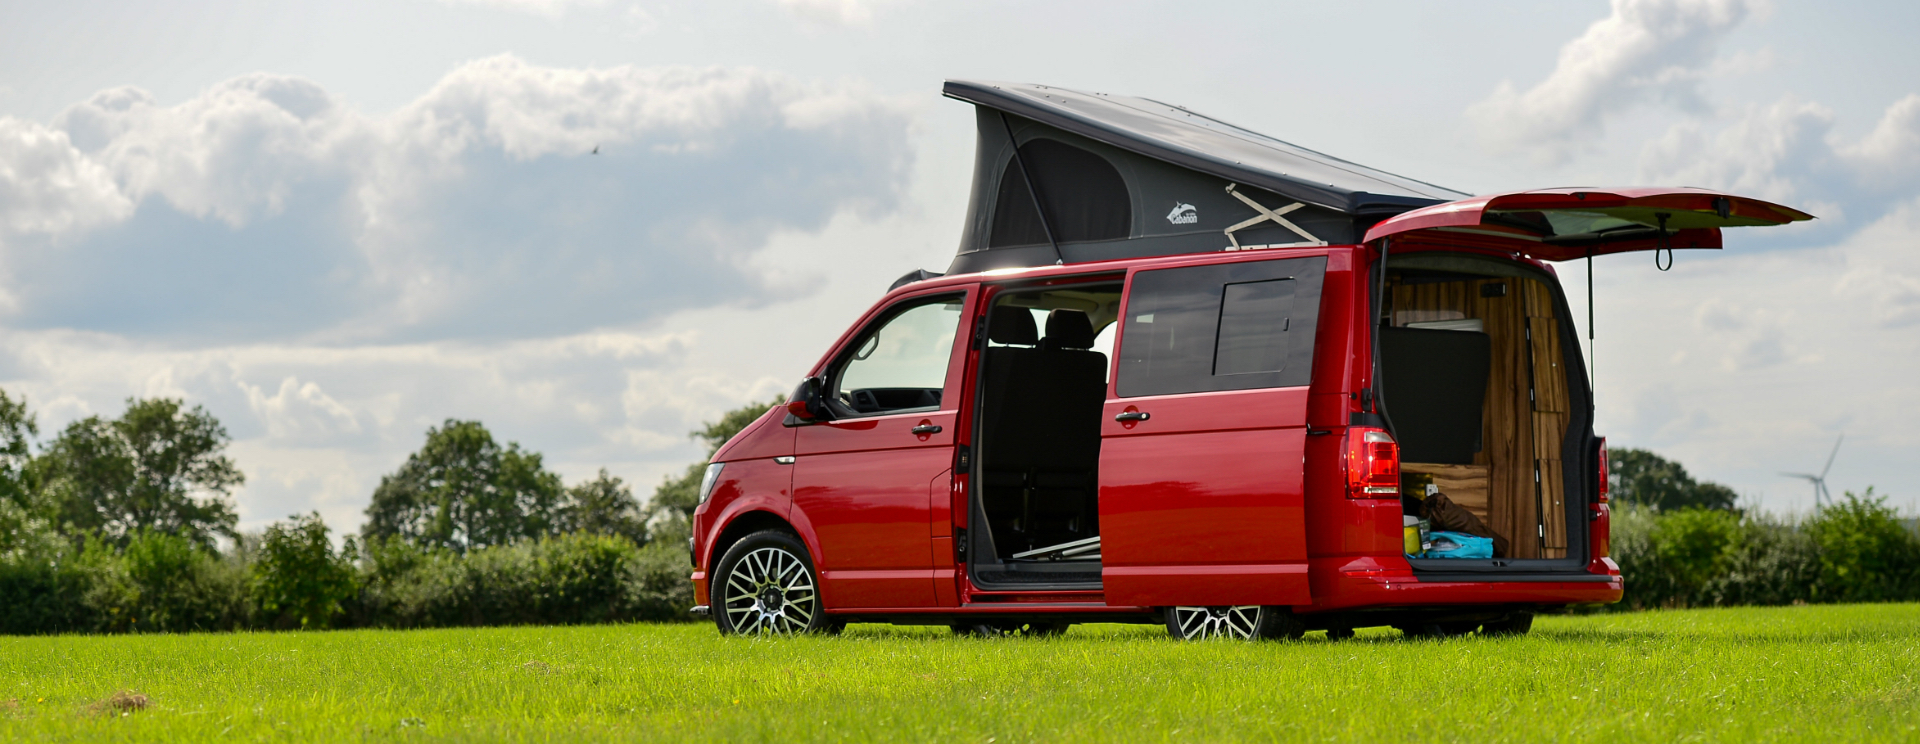 Campervan Financing